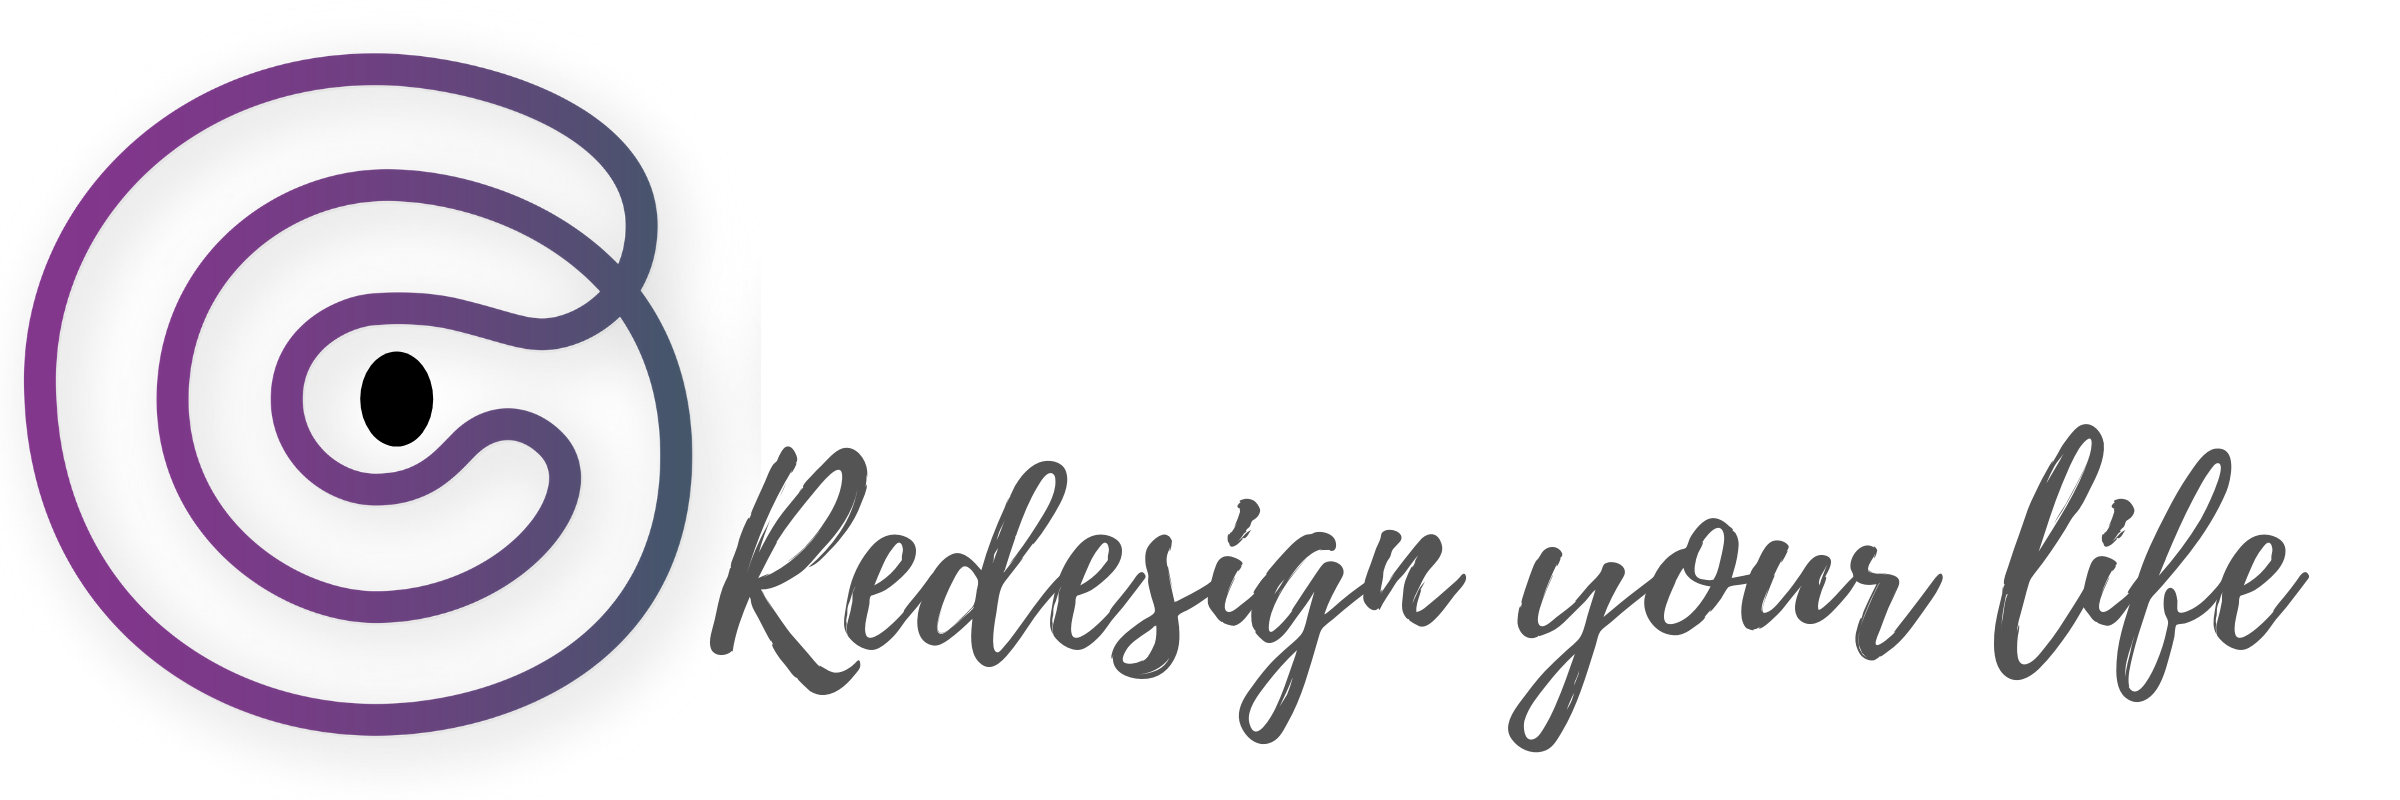 Redesign-your-life | Online training | Connecting2Create